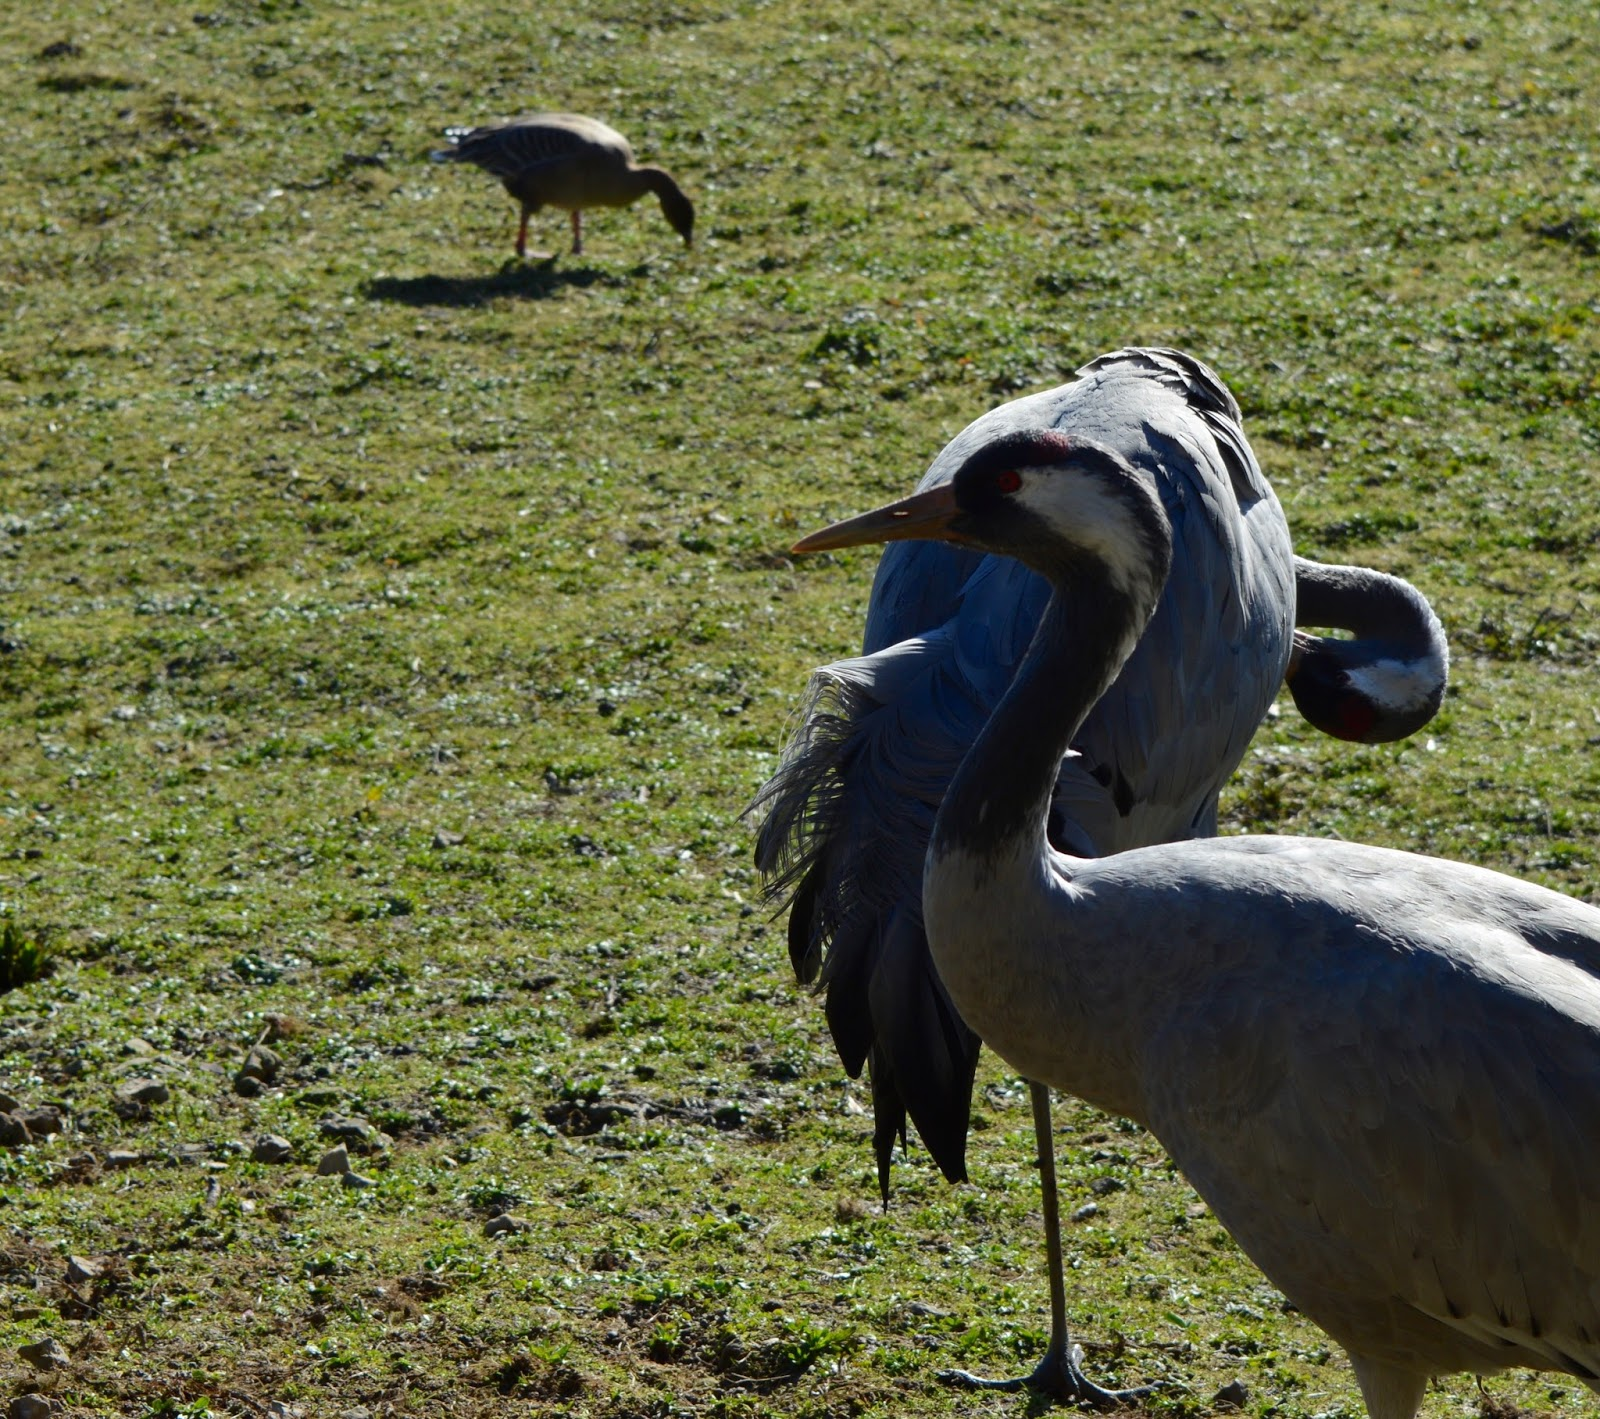 WWT Washington Wetland Centre | An Accessible North East Day Out for the Whole Family - cranes